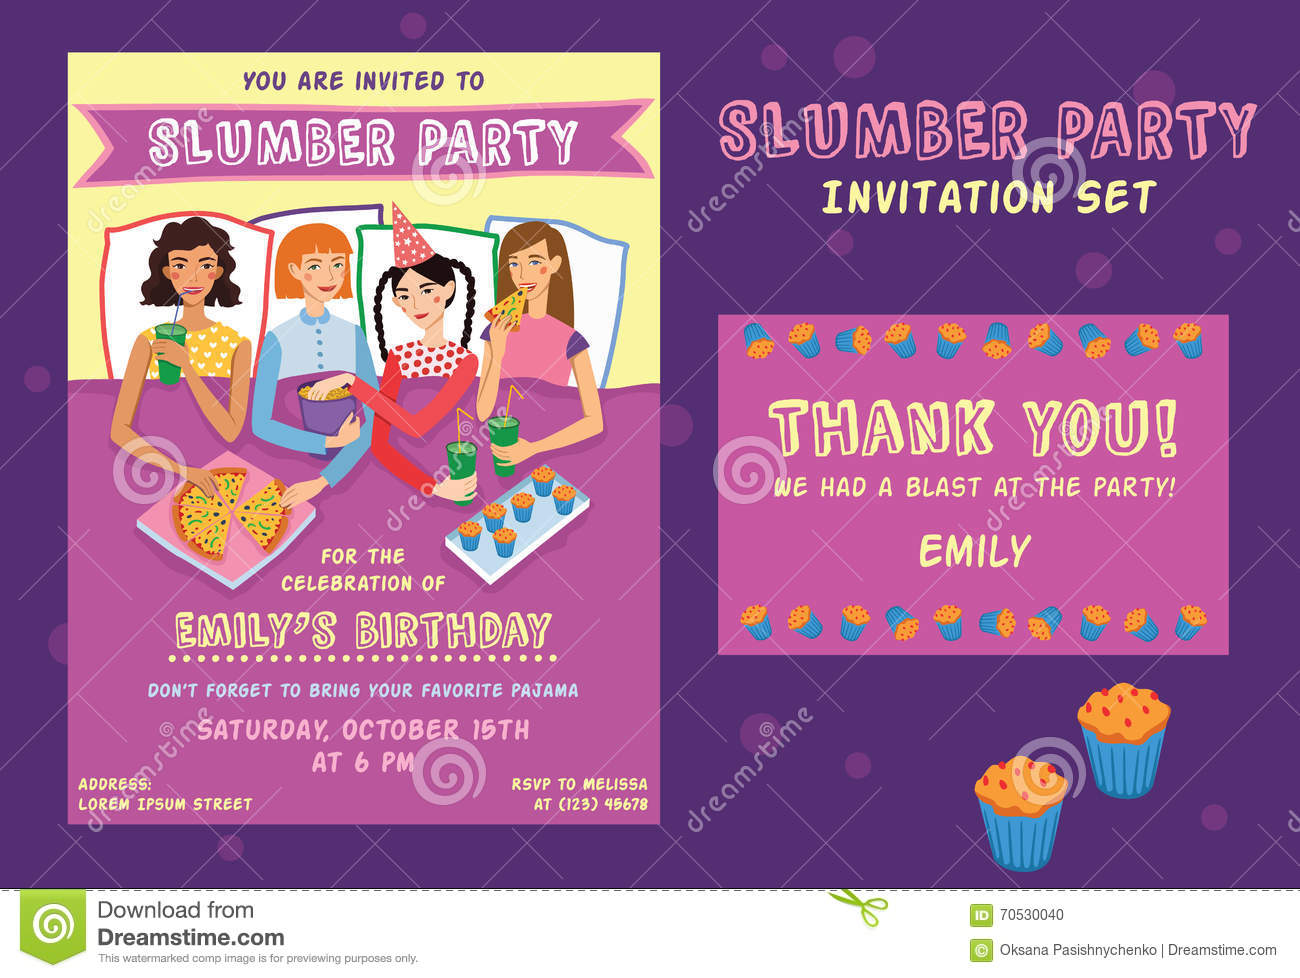 Slumber Party Birthday Invitation Thank You Card Set With Four Cute Girls Friends Vector Illustration Ginger Brunette Blond And Brown Haired Girlfriends